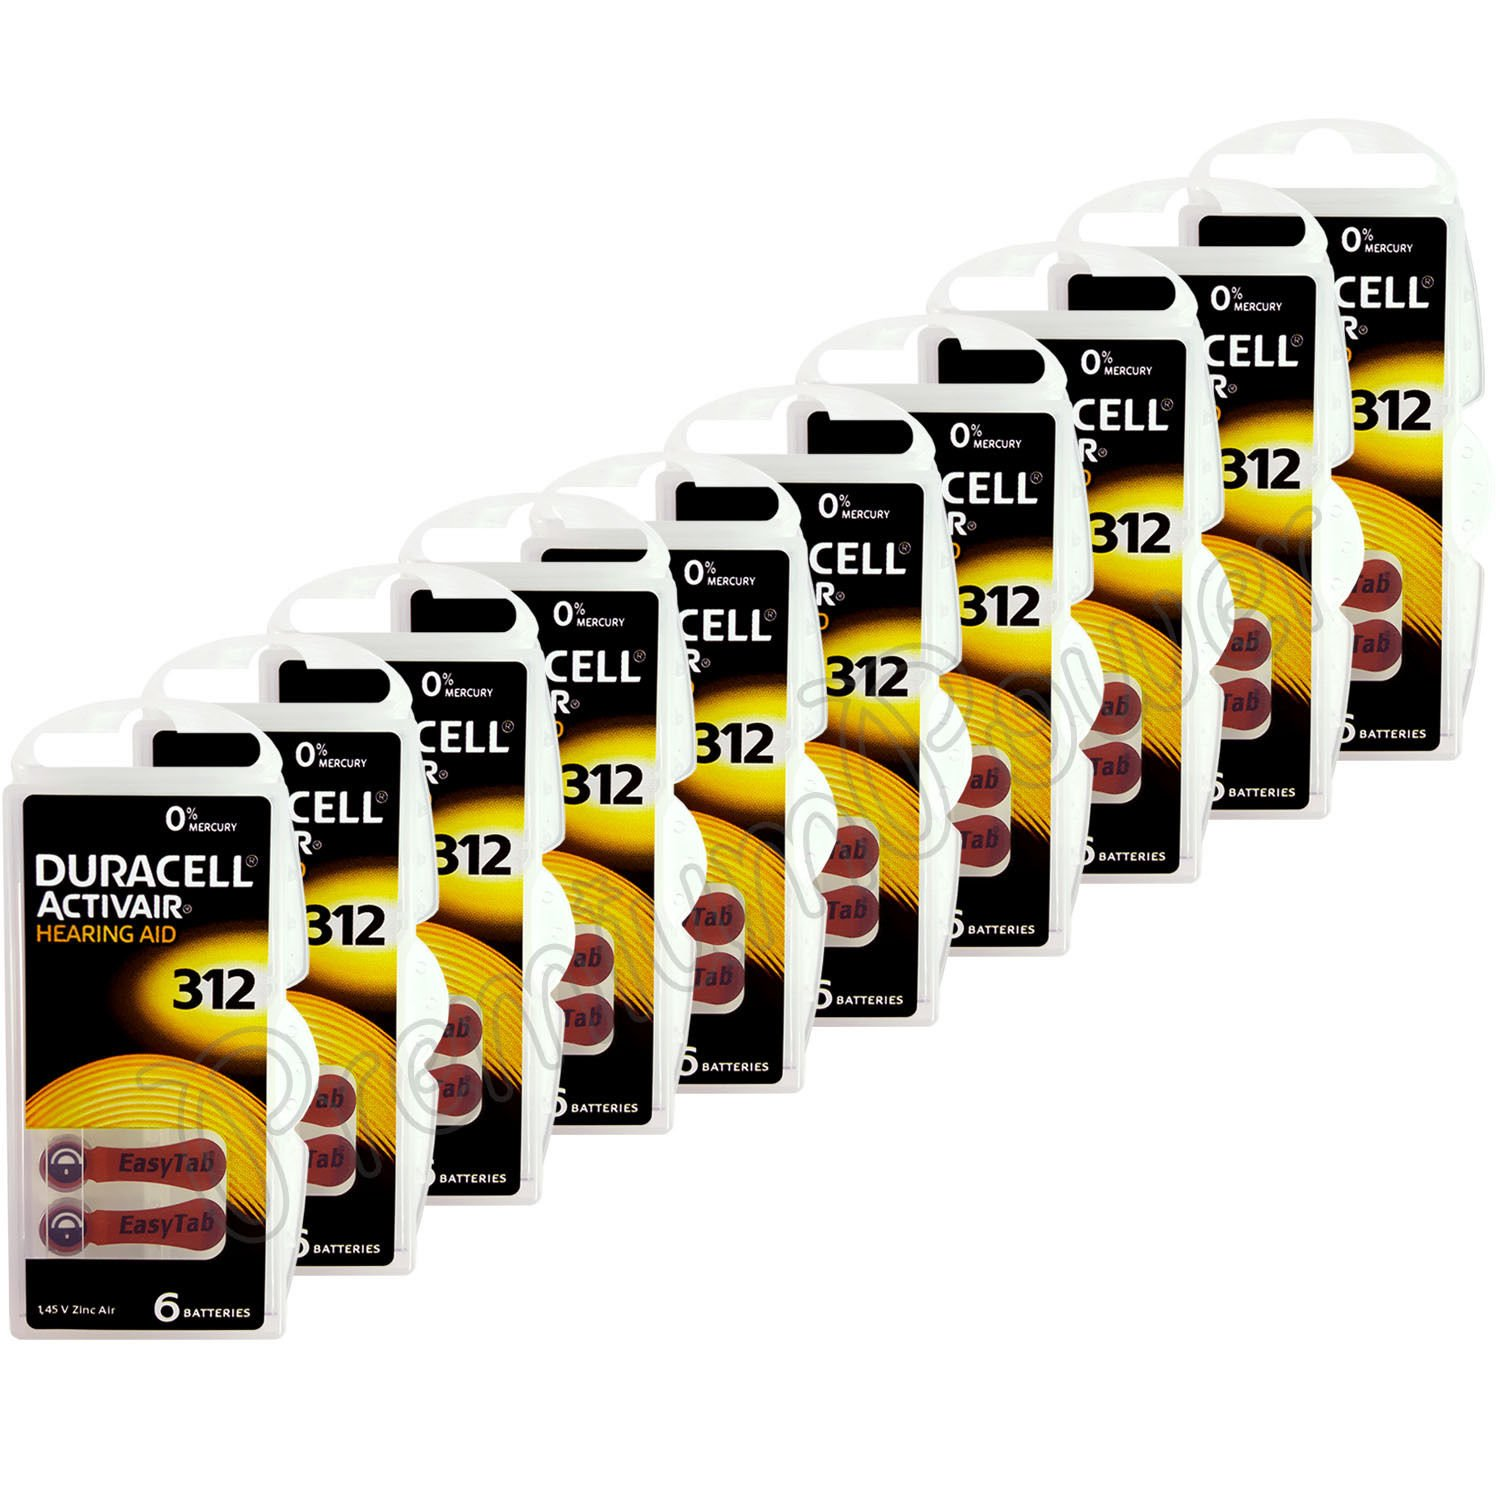 Duracell Hearing Aid Batteries Size 312 pack 40 batteries ((3.Units)) by Duracell